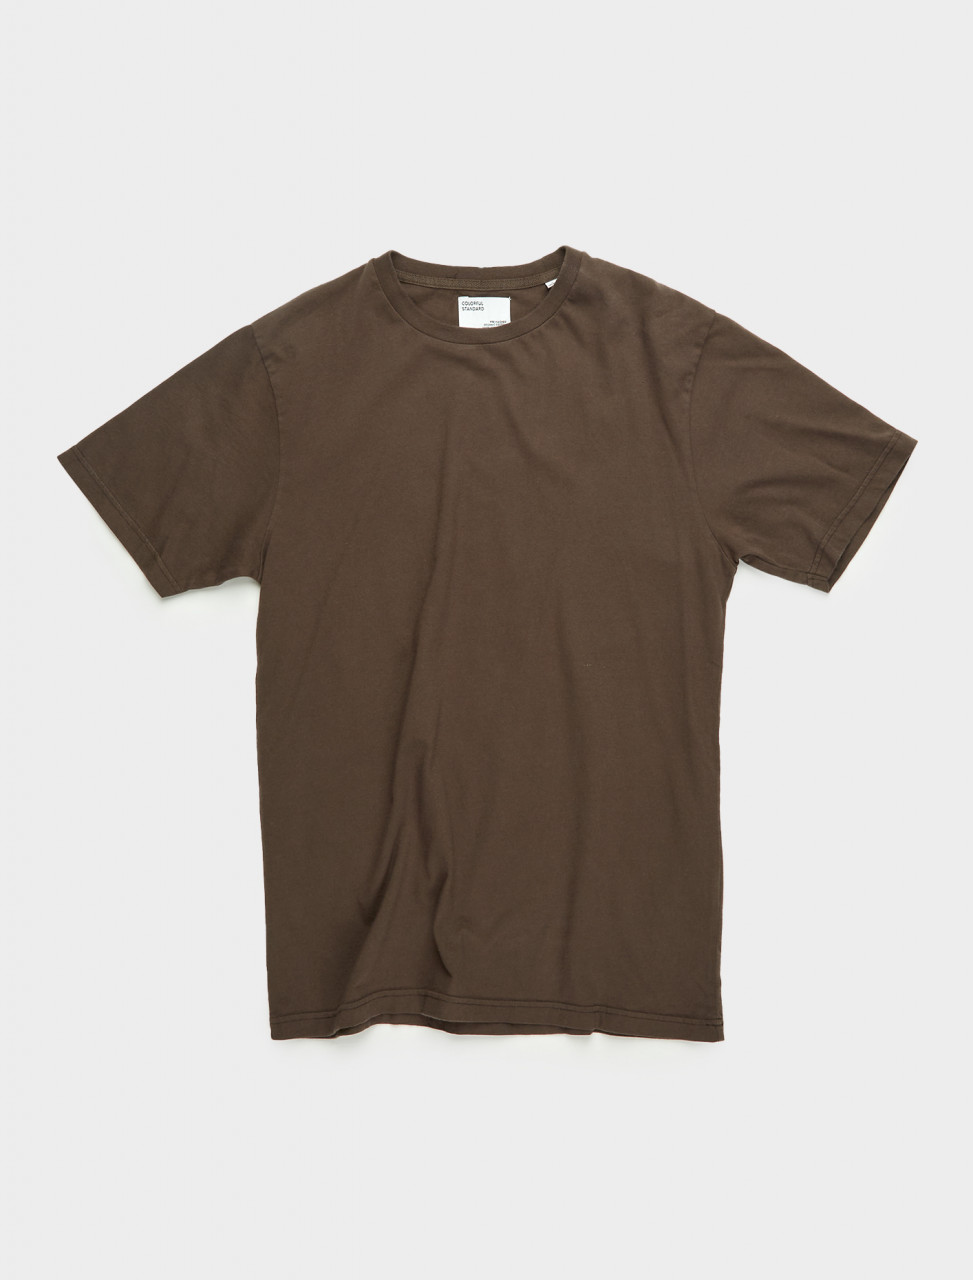 307-CS1001-CB COLORFUL STANDARD CLASSIC ORGANIC TEE COFFEE BROWN